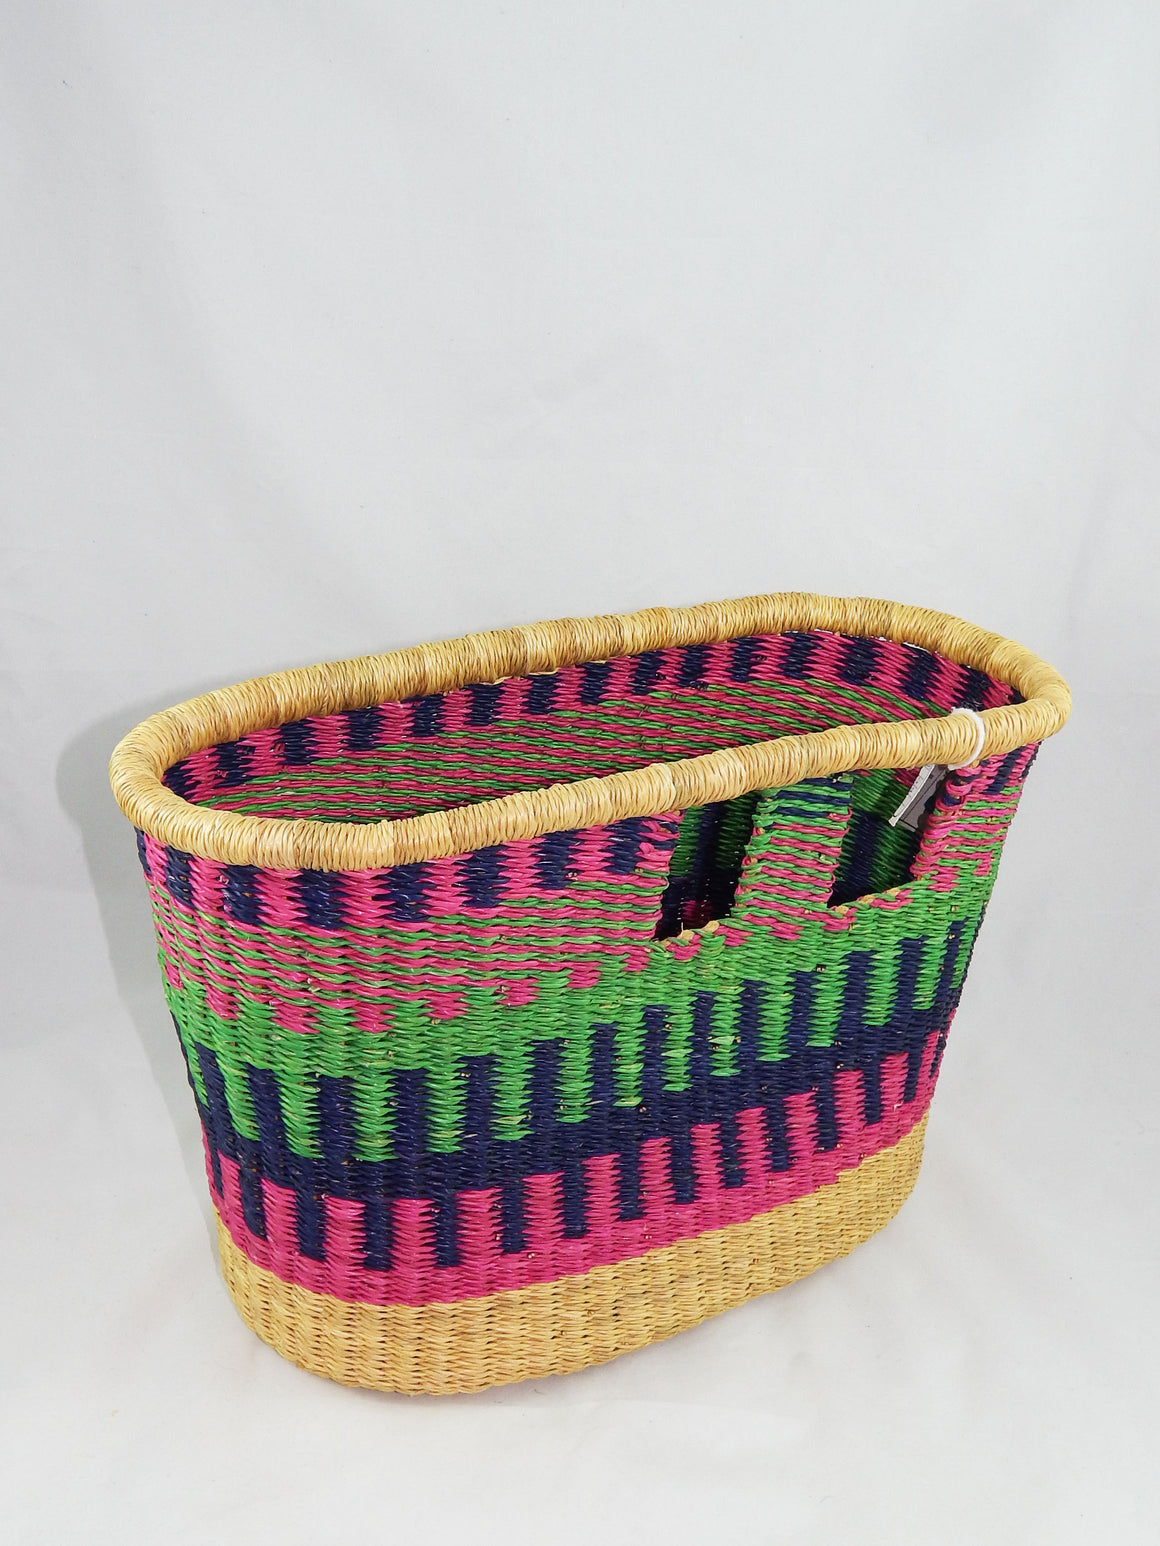 Bolga Basket - Bicycle Baskets